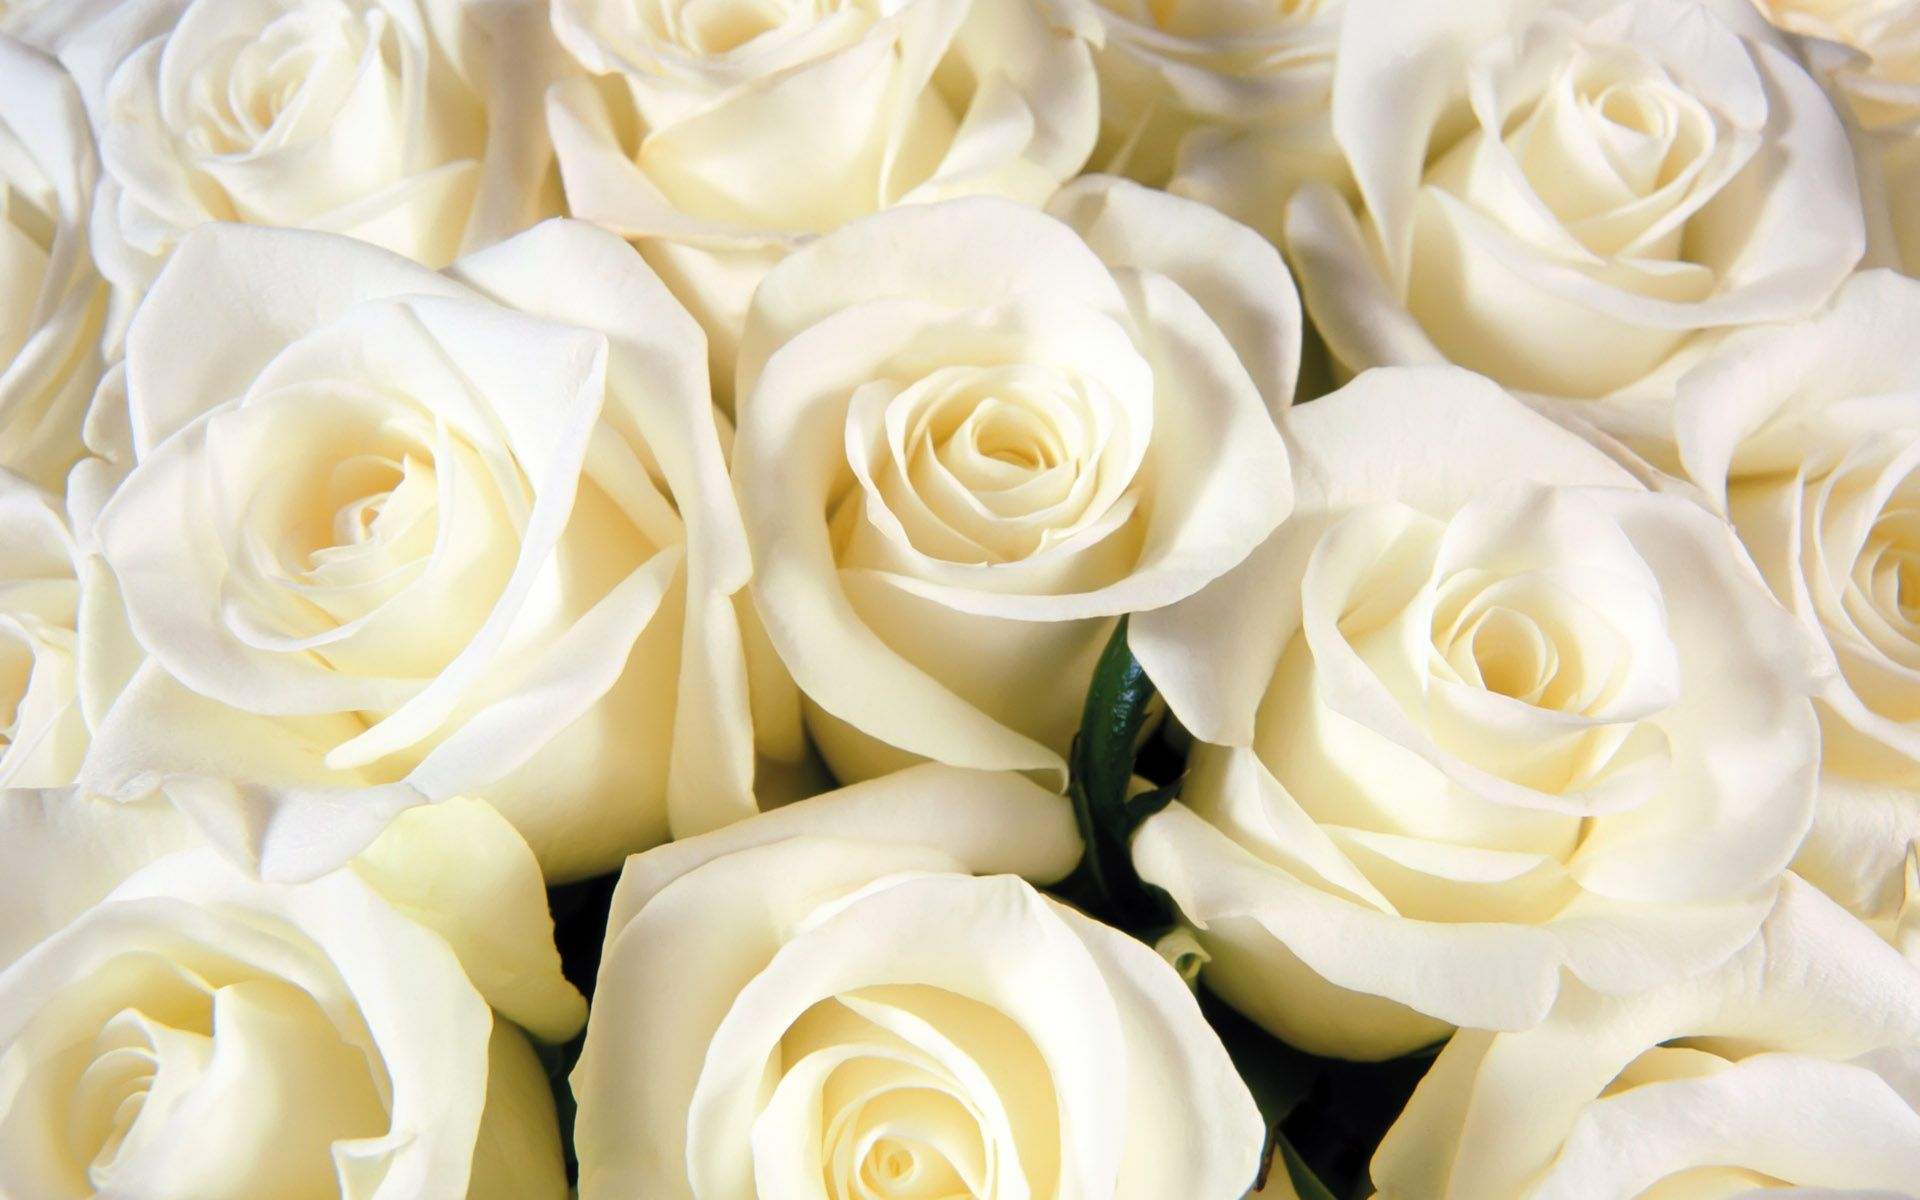 White Rose Flowers Wallpapers: Images Roses Blanches